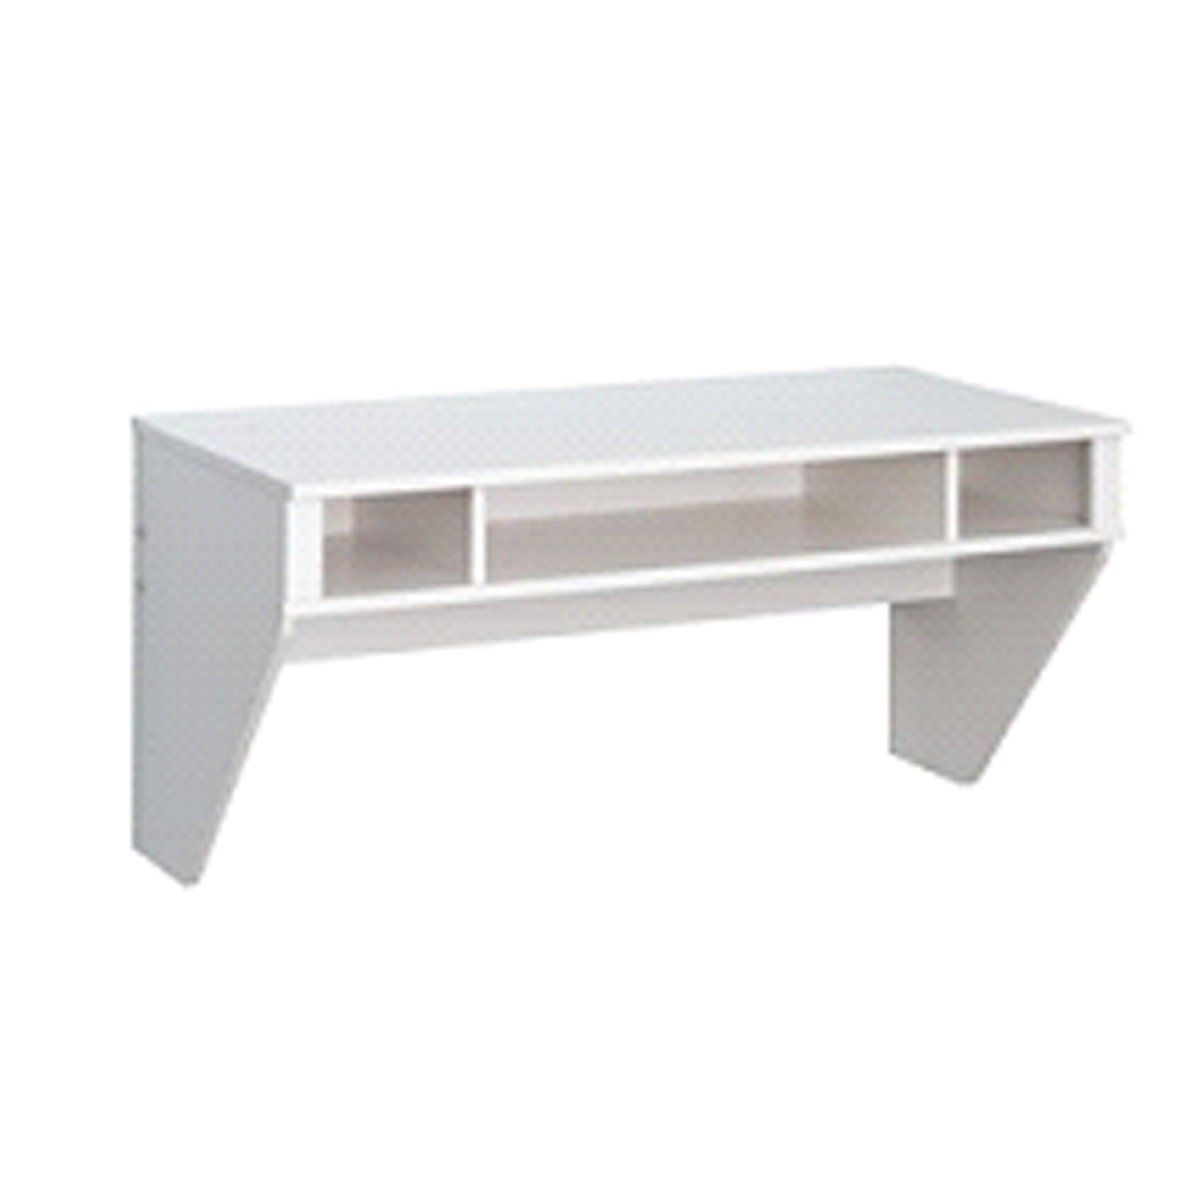 TygerClaw Stylish Designer Floating Desk, White